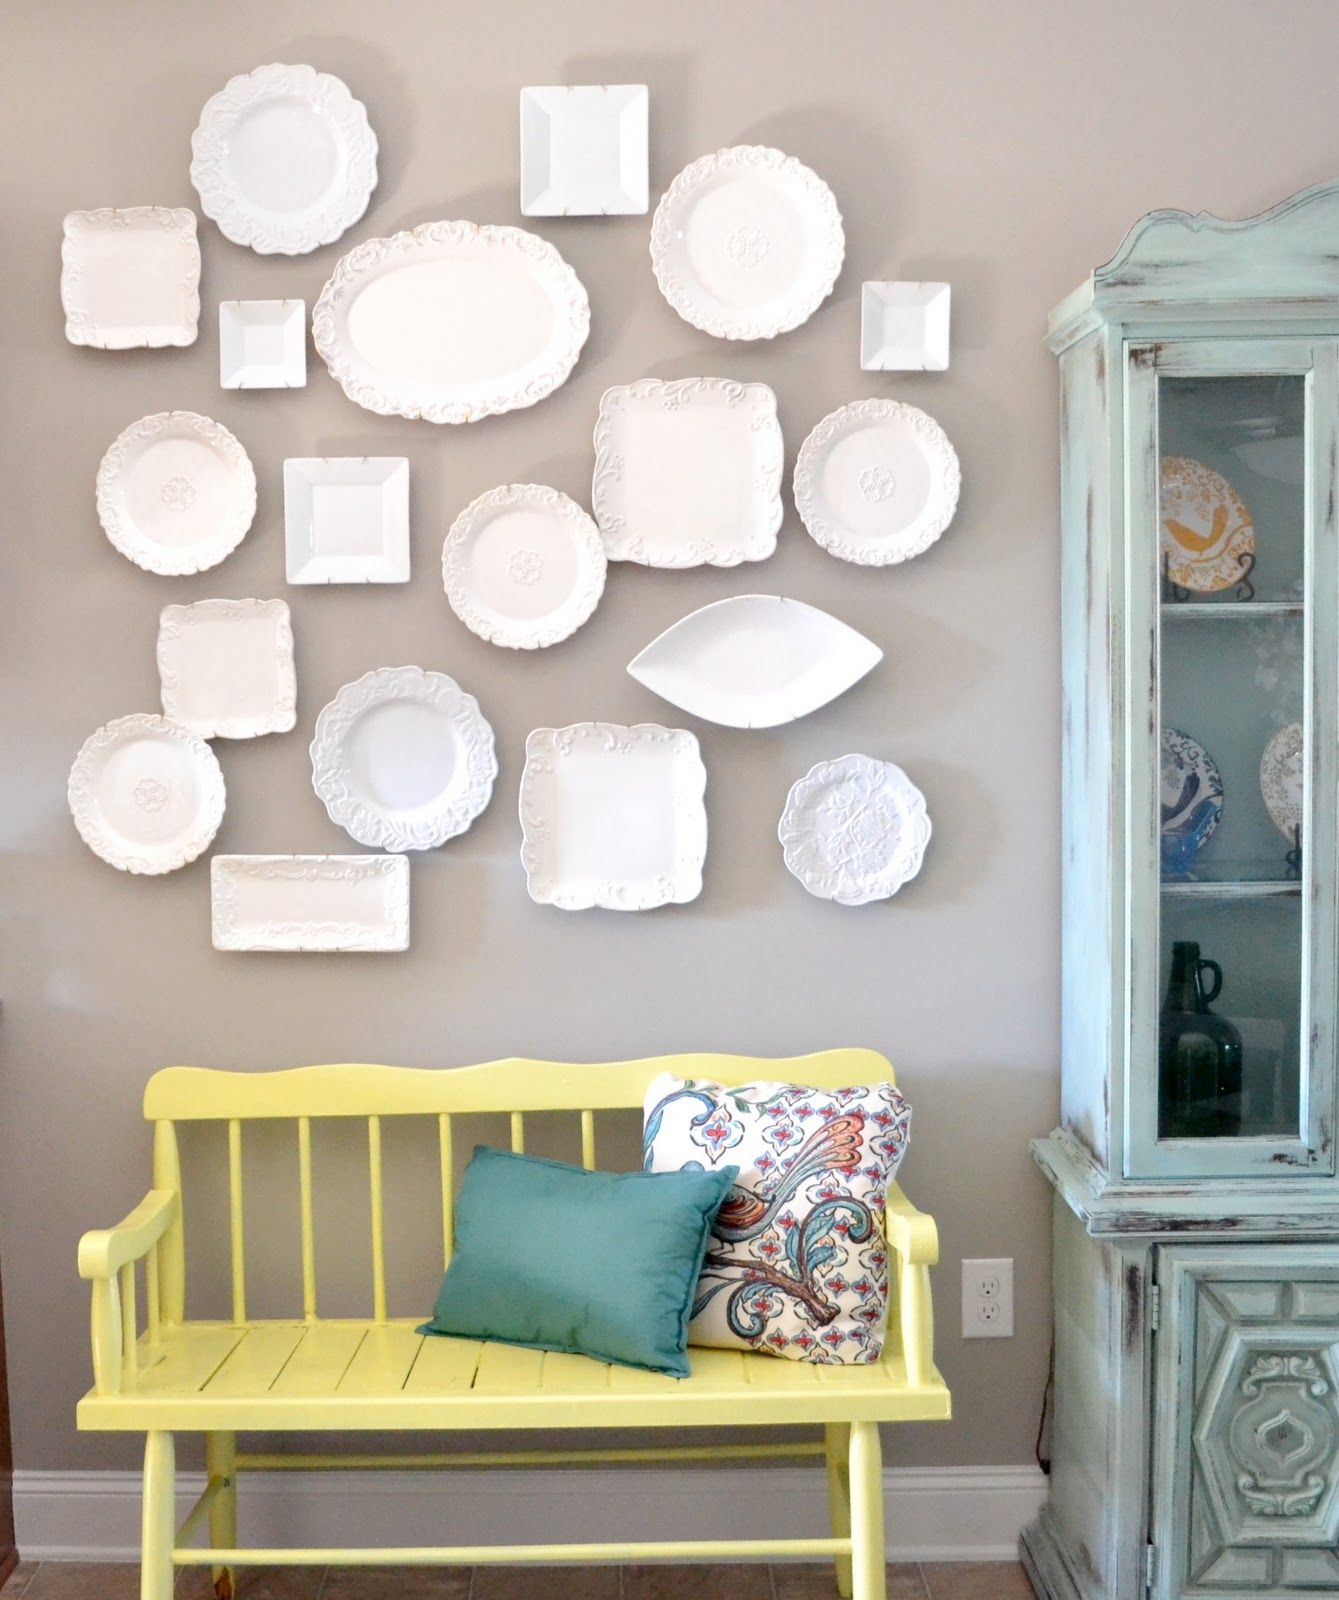 Plate Wall Art 20 Beautiful Wall Decor Ideas Using Decorative Plates  Plate Wall